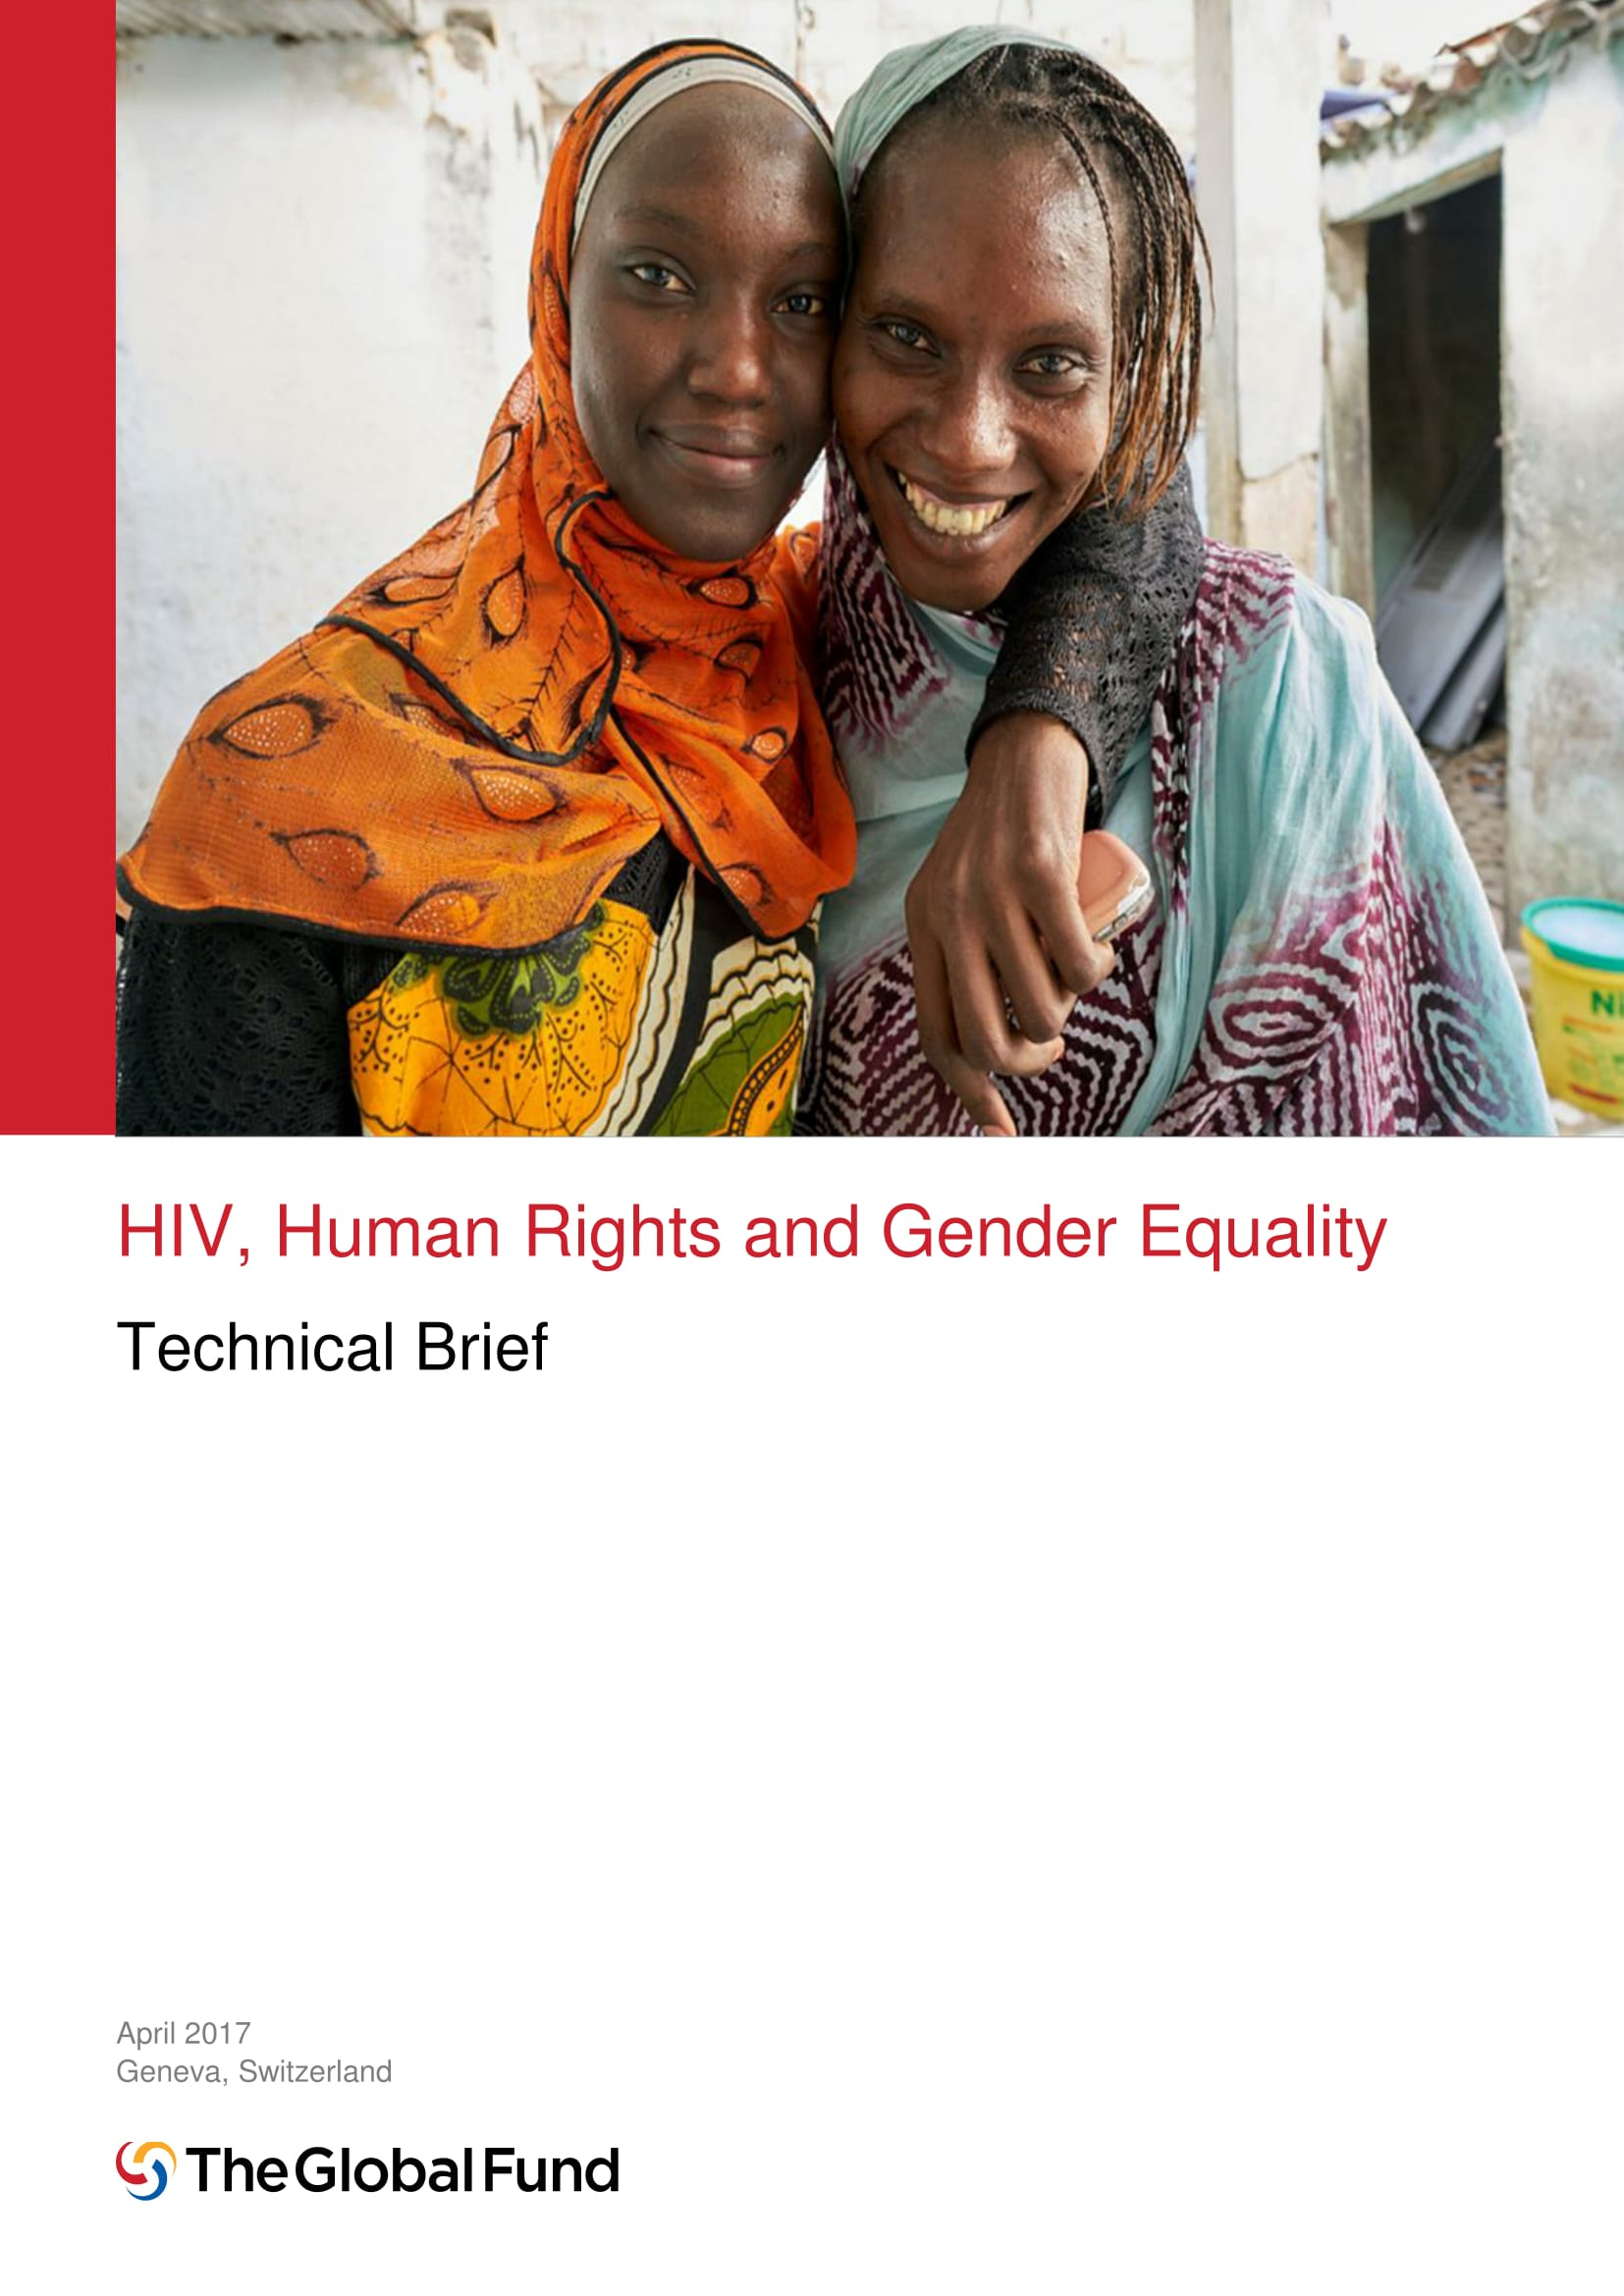 Technical Brief: HIV, Human Rights and Gender Equality